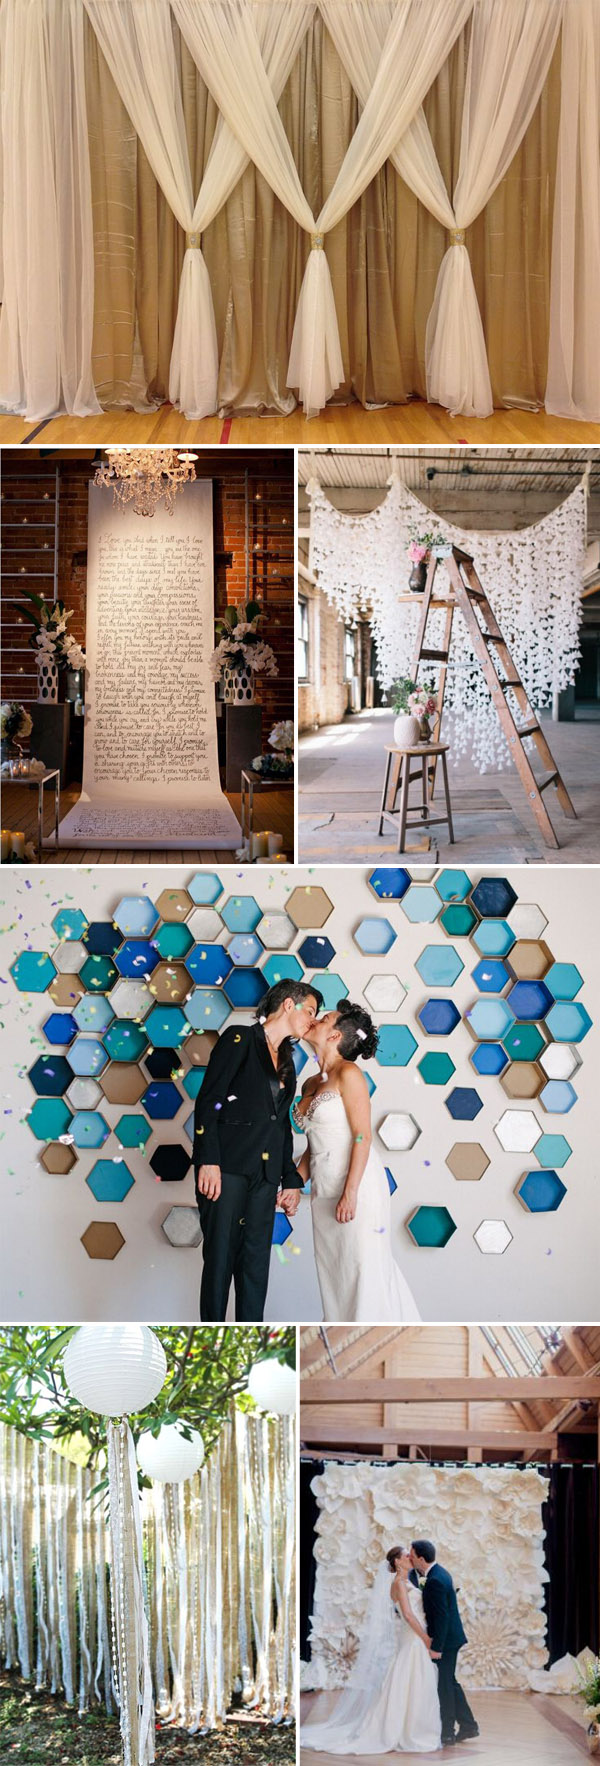 Top 20 unique backdrops for wedding ceremony ideas diy wedding backdrop ideas for 2015 wedding ceremony decorations junglespirit Image collections